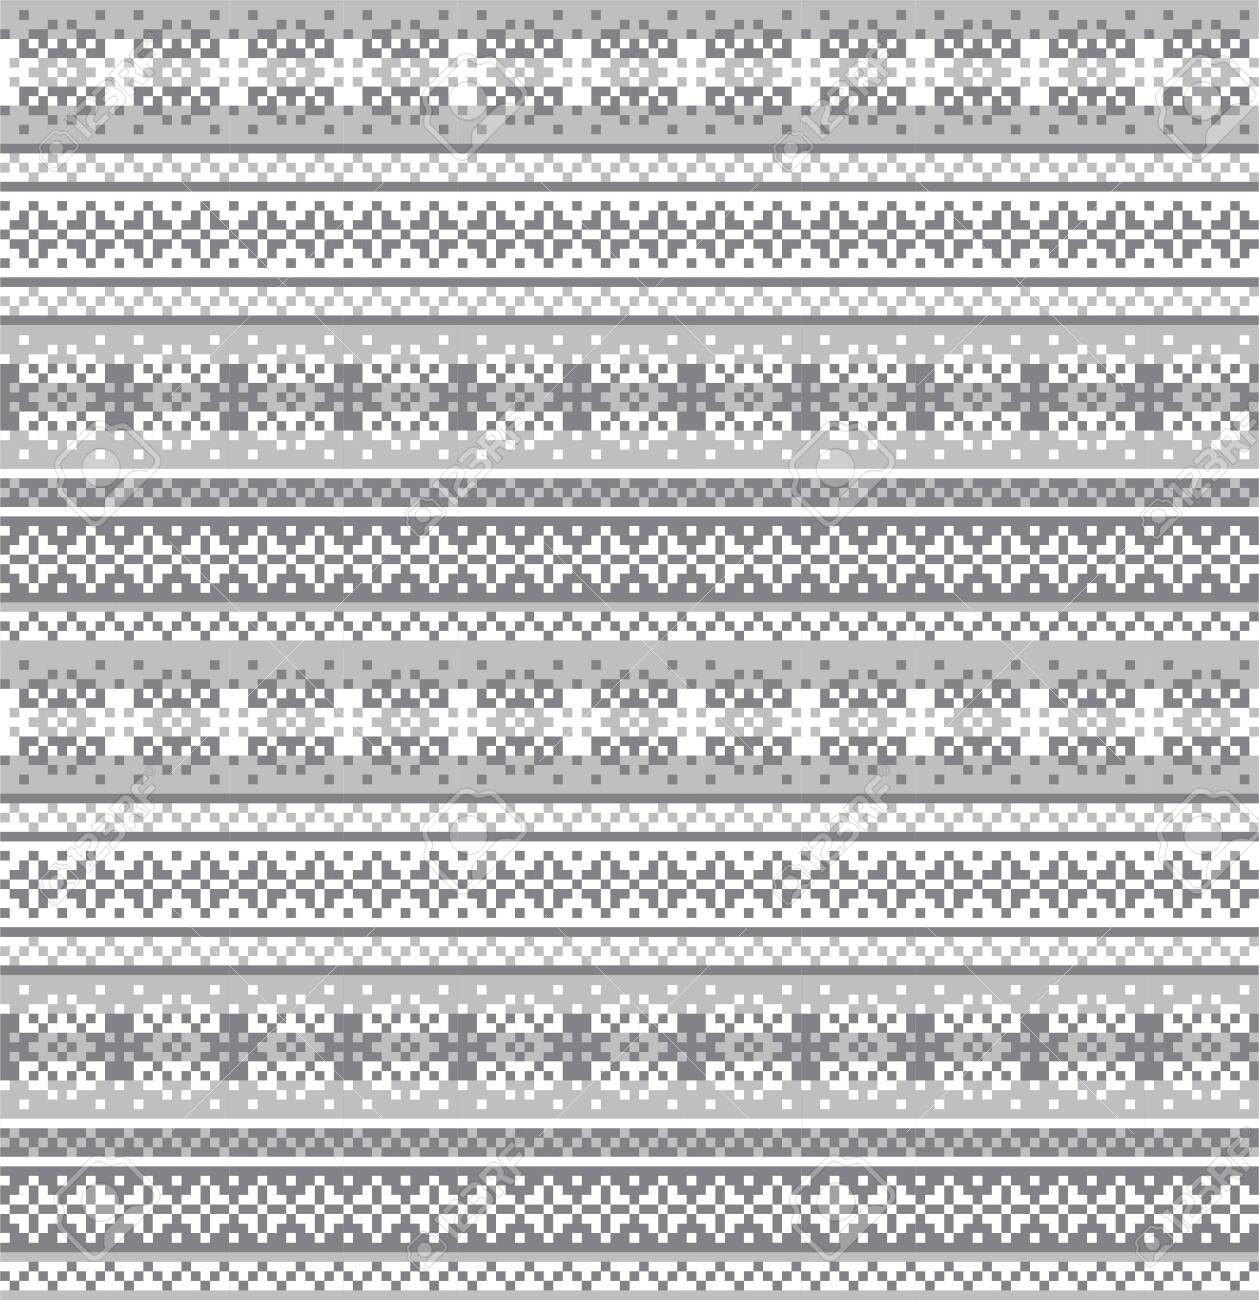 fair isle snowflake pattern suitable for website resources, graphics, print designs, fashion textiles, knitwear and etc. - 135939146